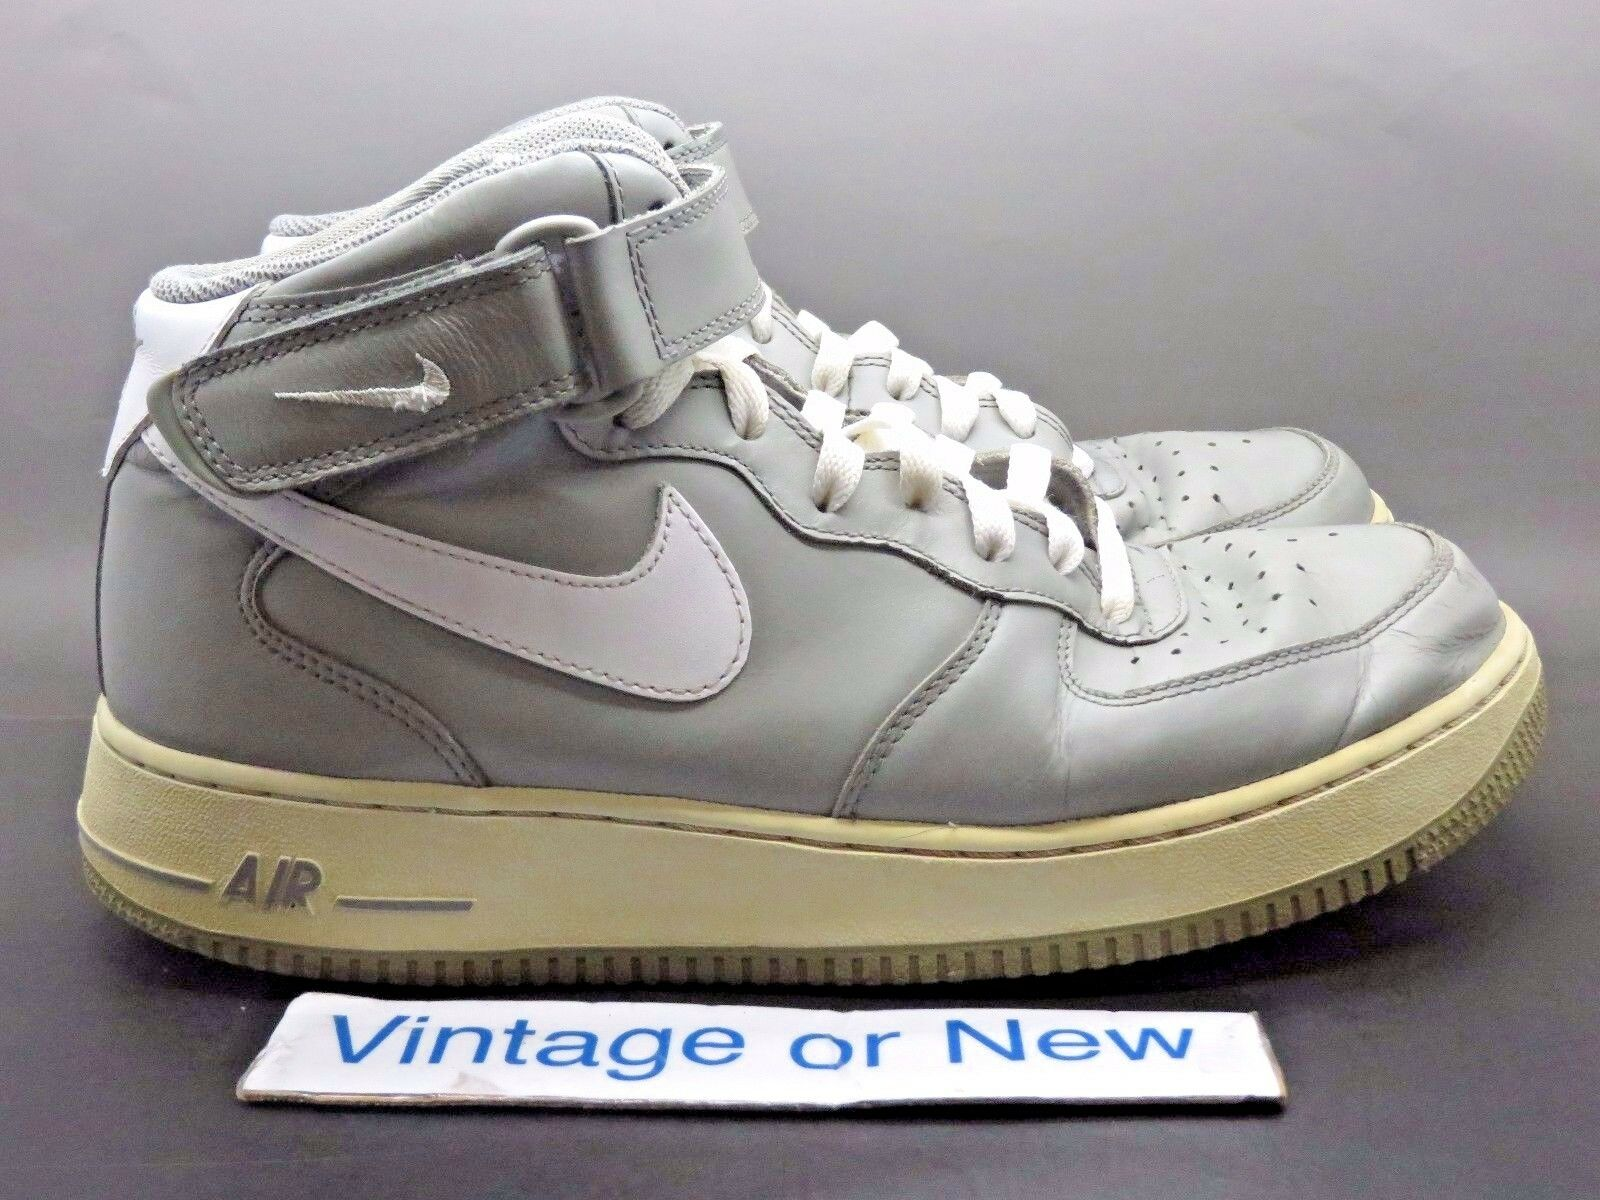 nike air force 1 mi - 2007 2007 2007 moyenne 315123-007 sz gris - blanc 8d15b0